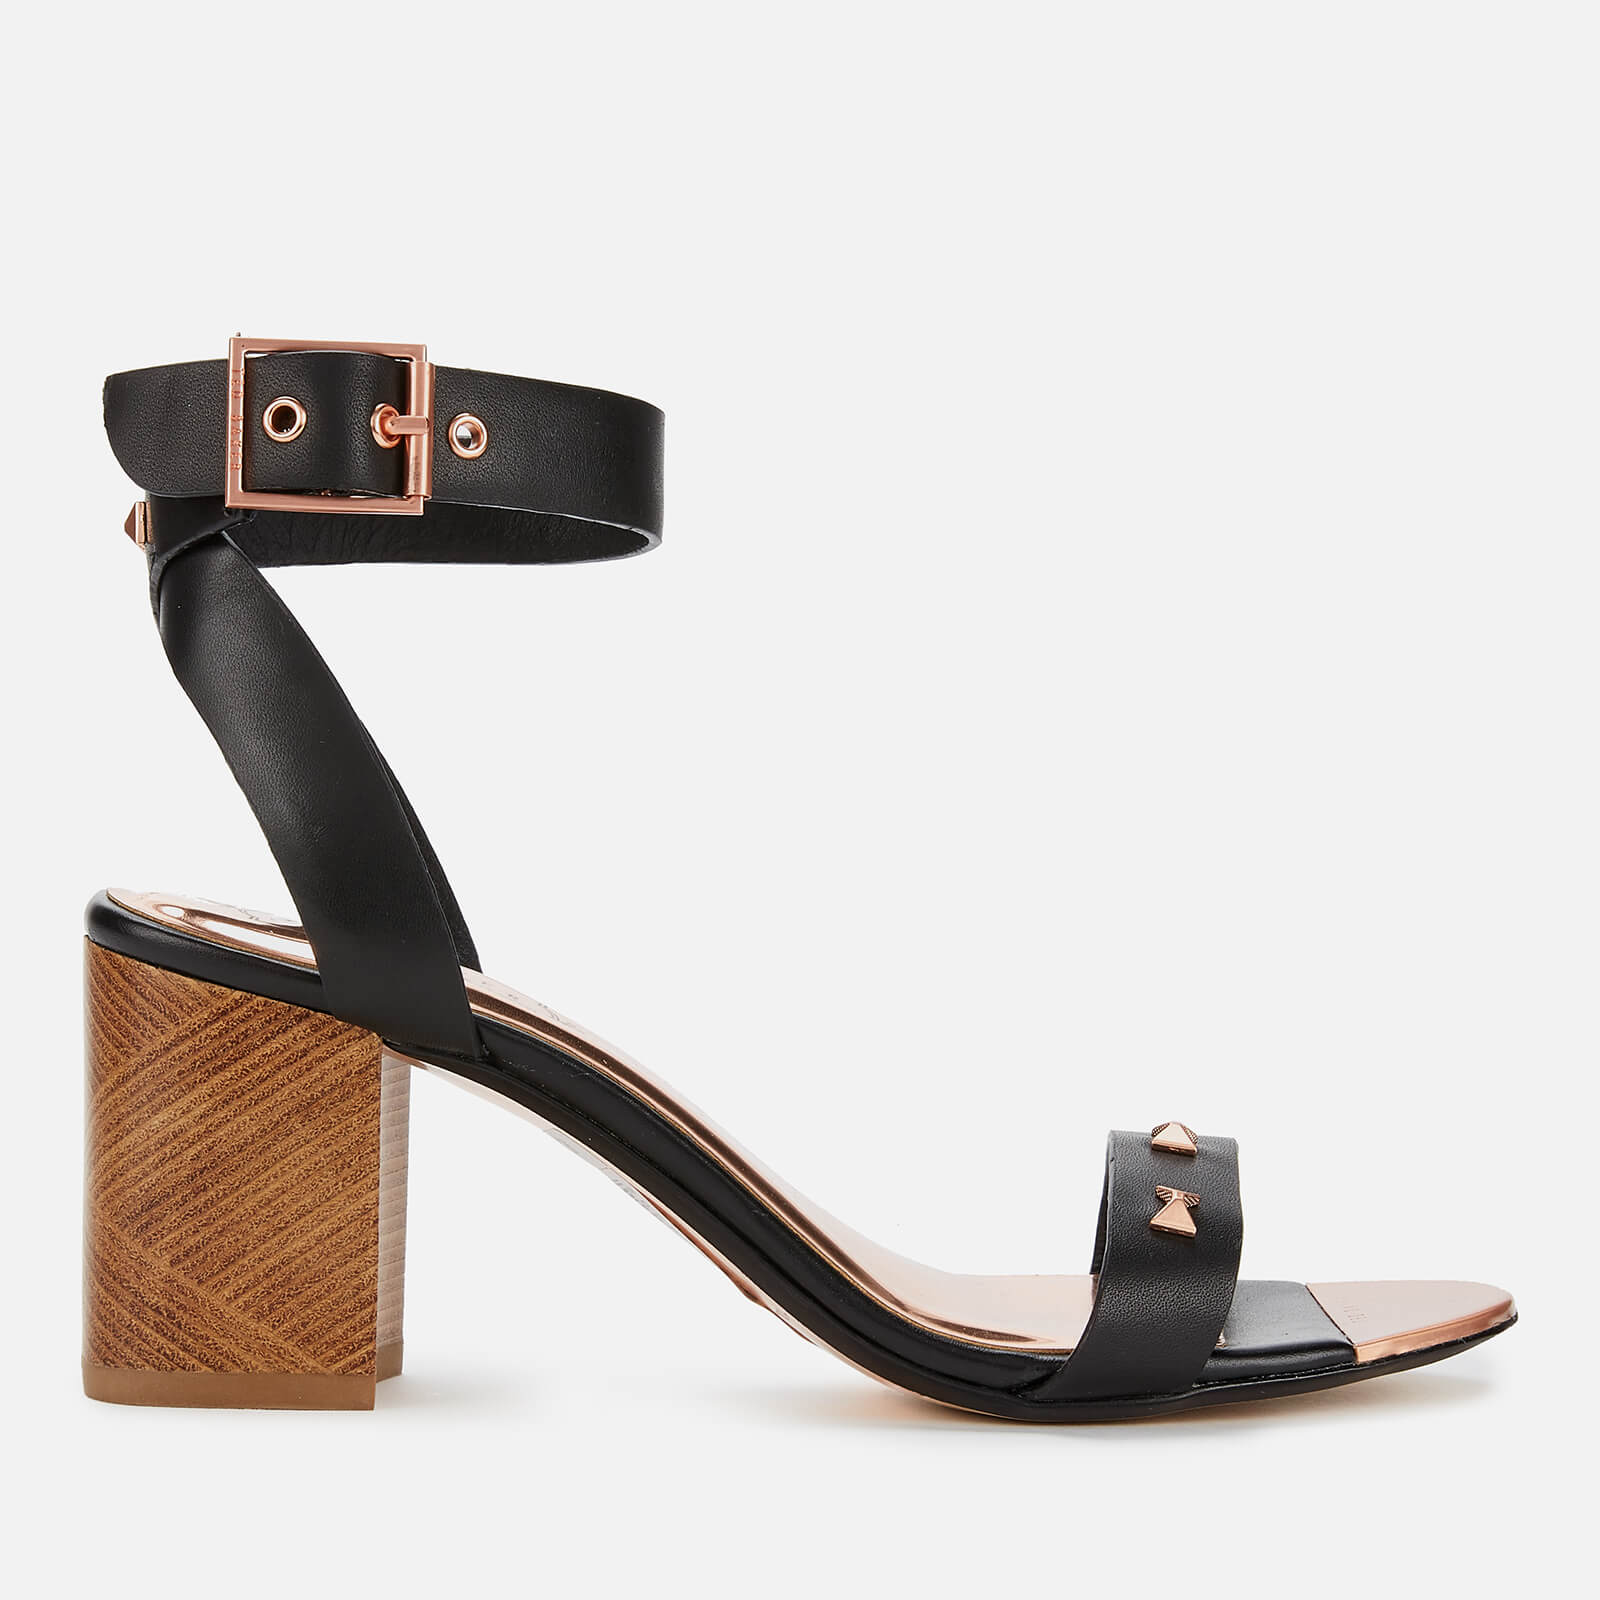 19acabab864 Ted Baker Women's Biah Leather Block Heeled Sandals - Black